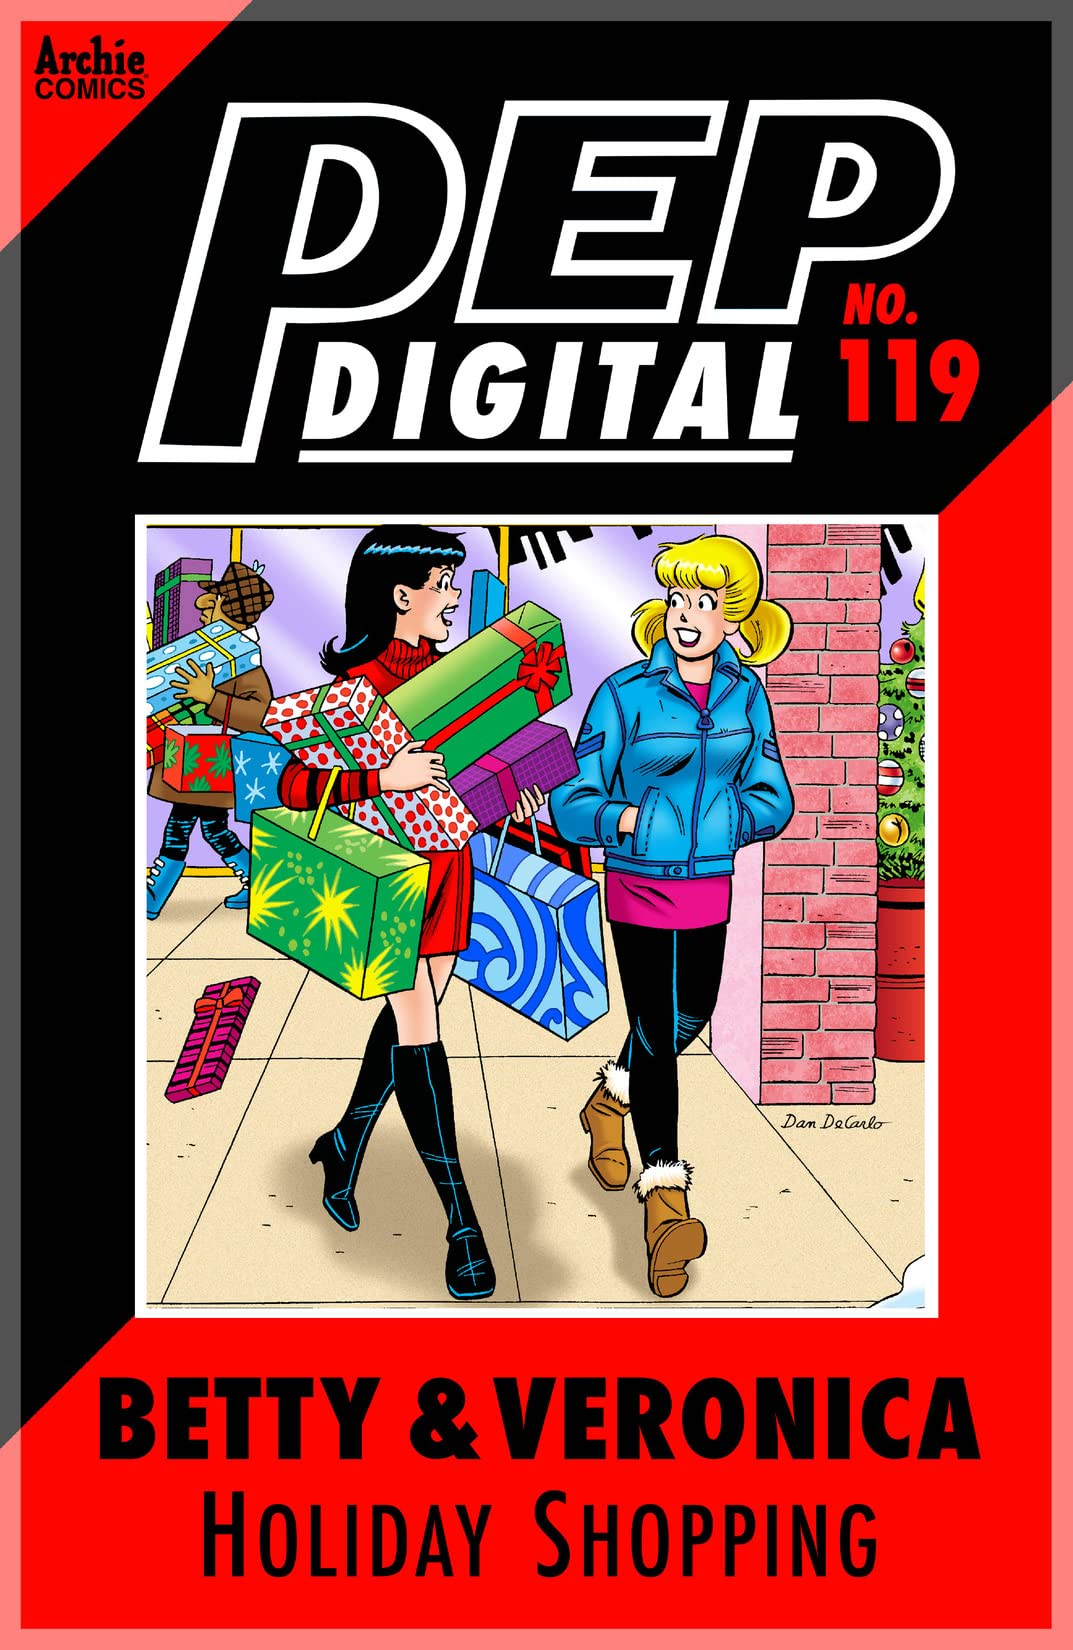 PEP Digital #119: Betty & Veronica Holiday Shopping